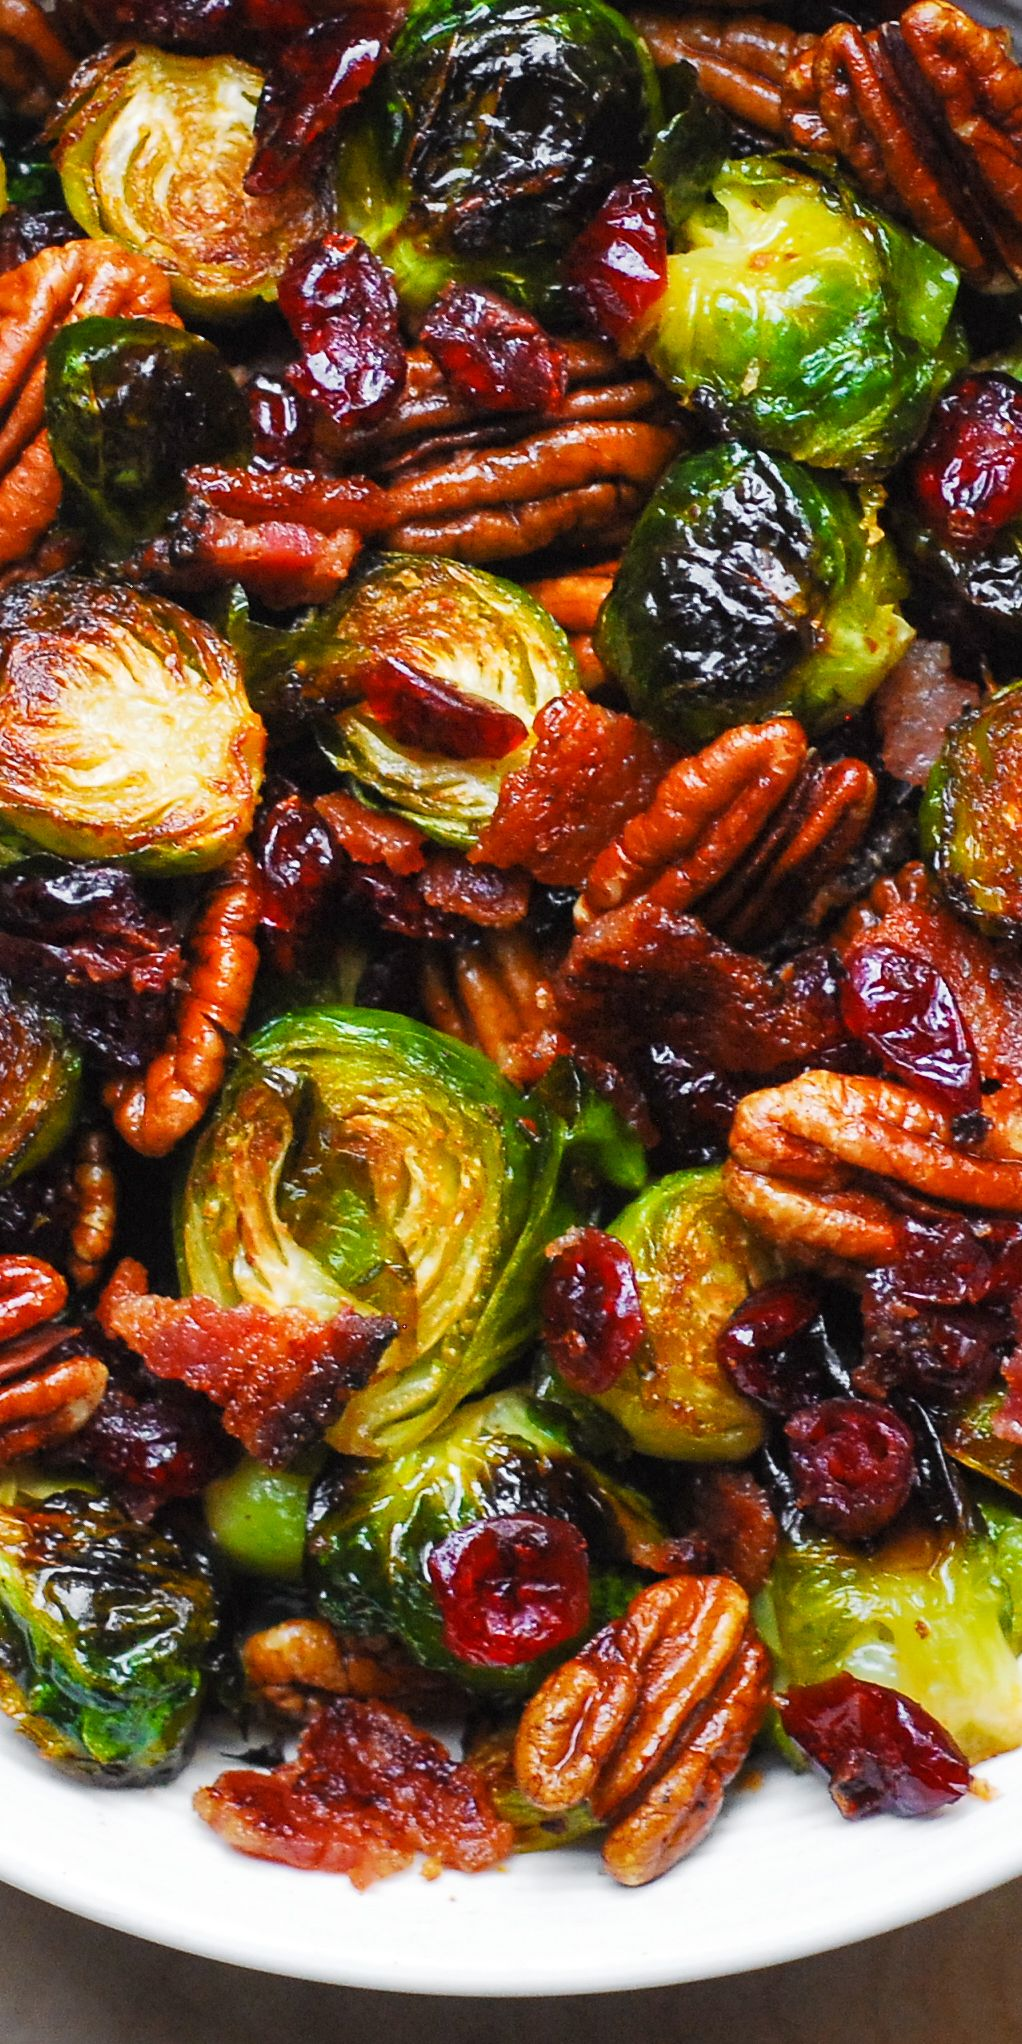 Christmas Side Dish: Brussels sprouts, Bacon, Peca